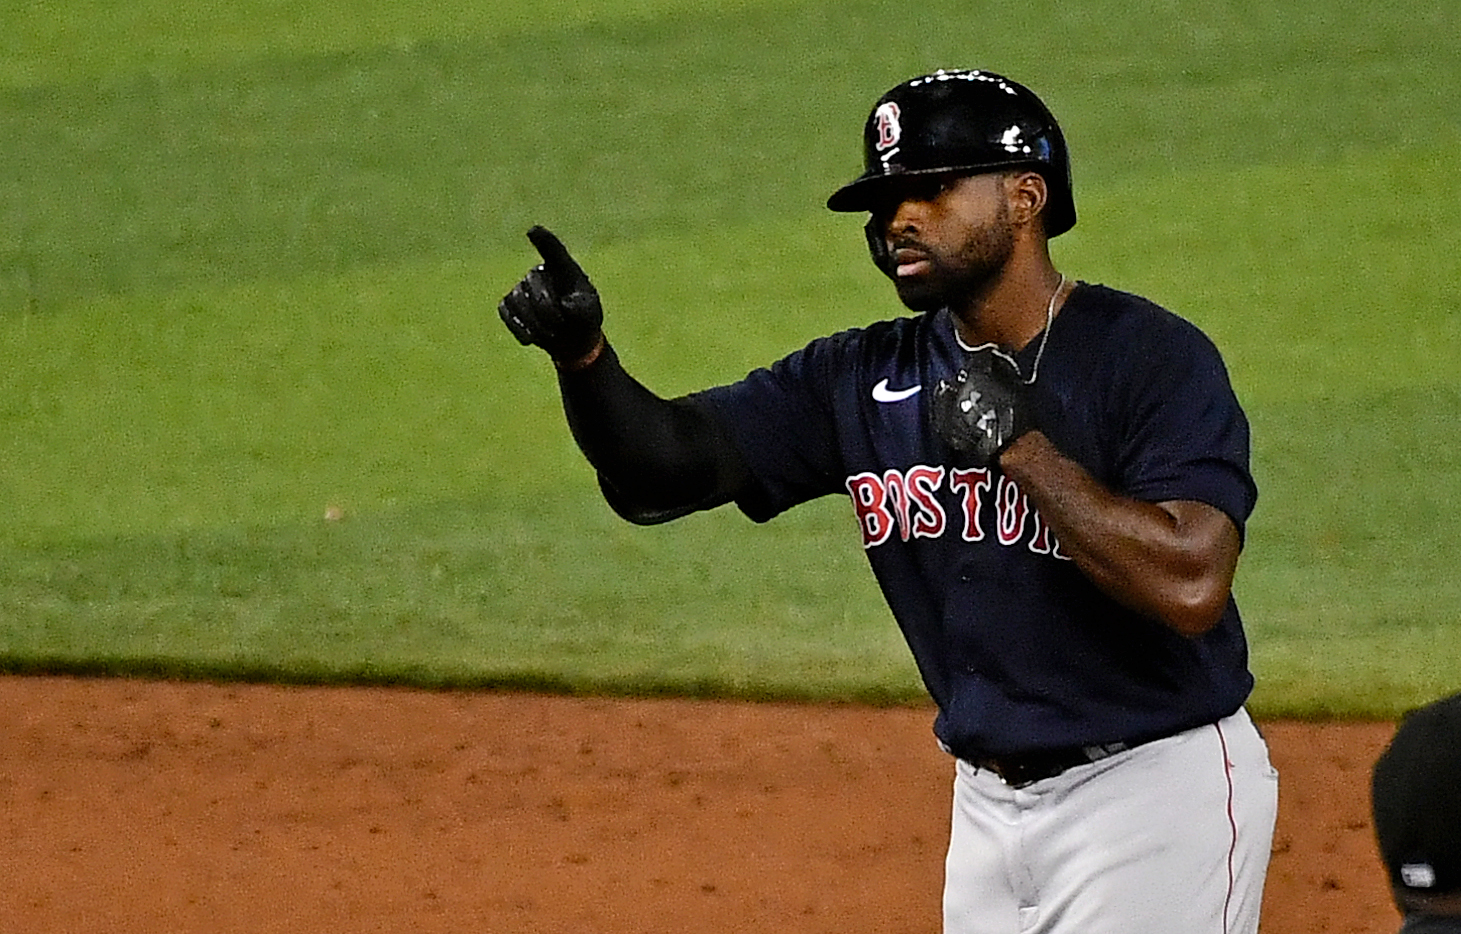 Boston Red Sox center fielder Jackie Bradley Jr. (19) reacts after doubling in a run in the 6th inning against the Miami Marlins at Marlins Park.